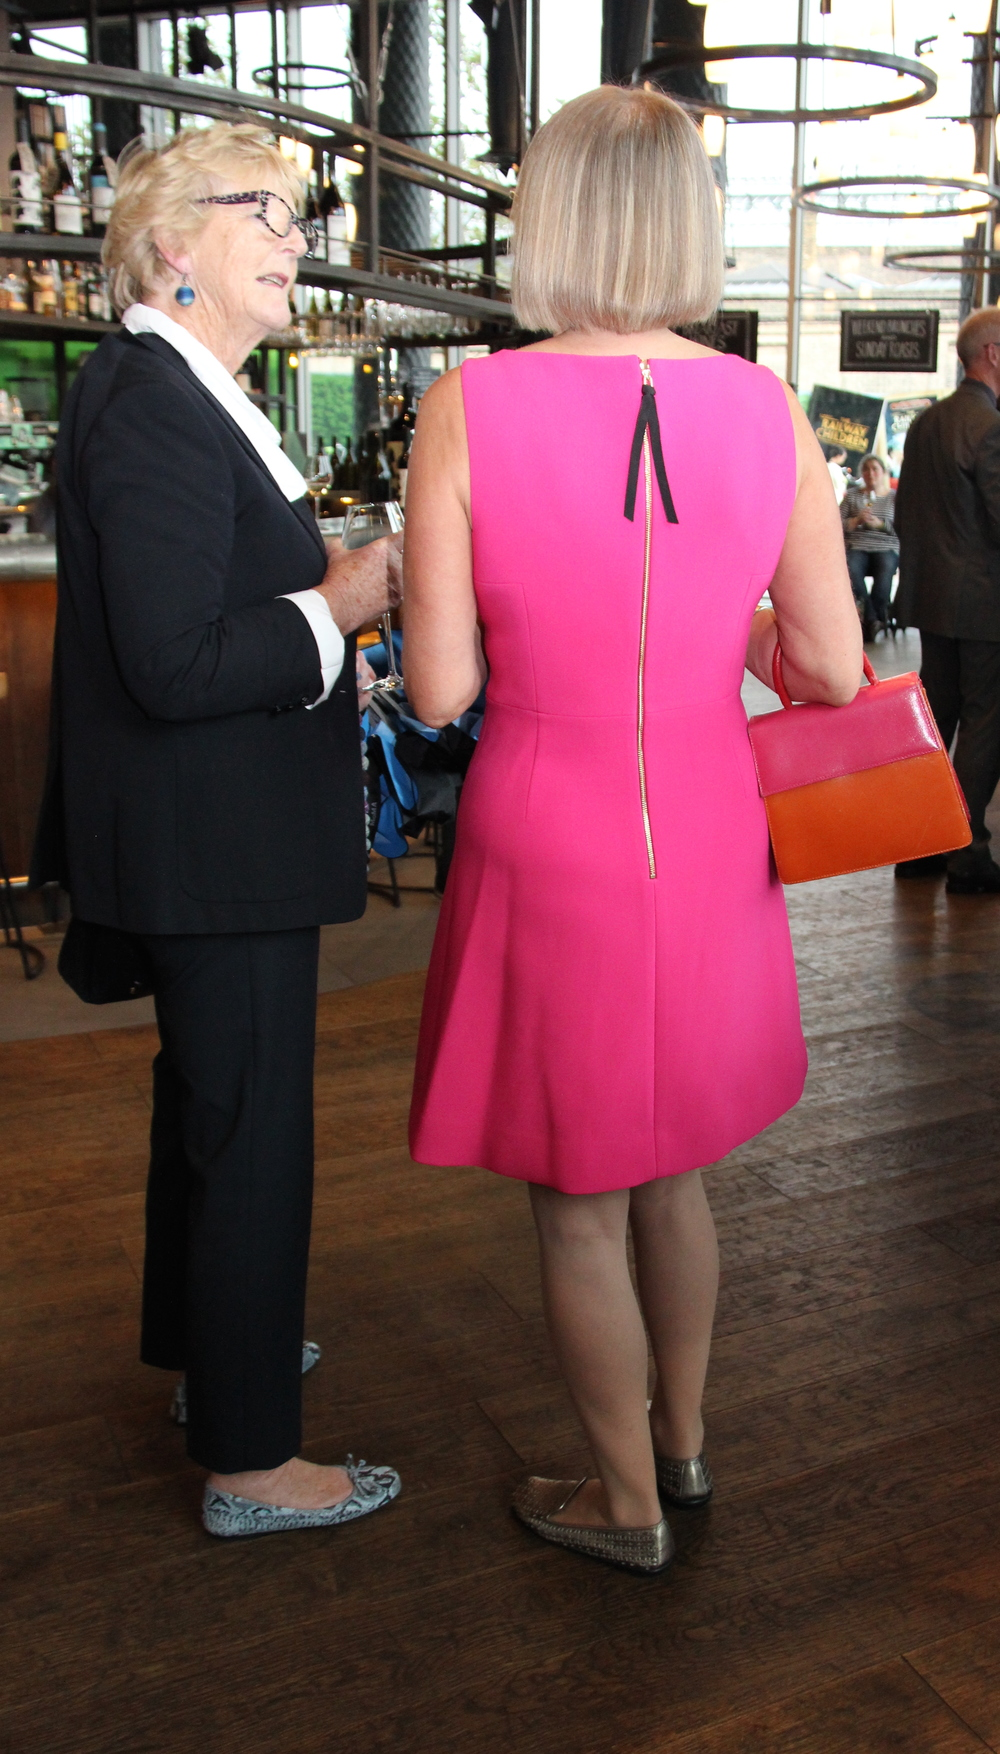 Lady Primrose Bell chats to Jancis, whose dress colour was no coincidence - it matches the book jacket